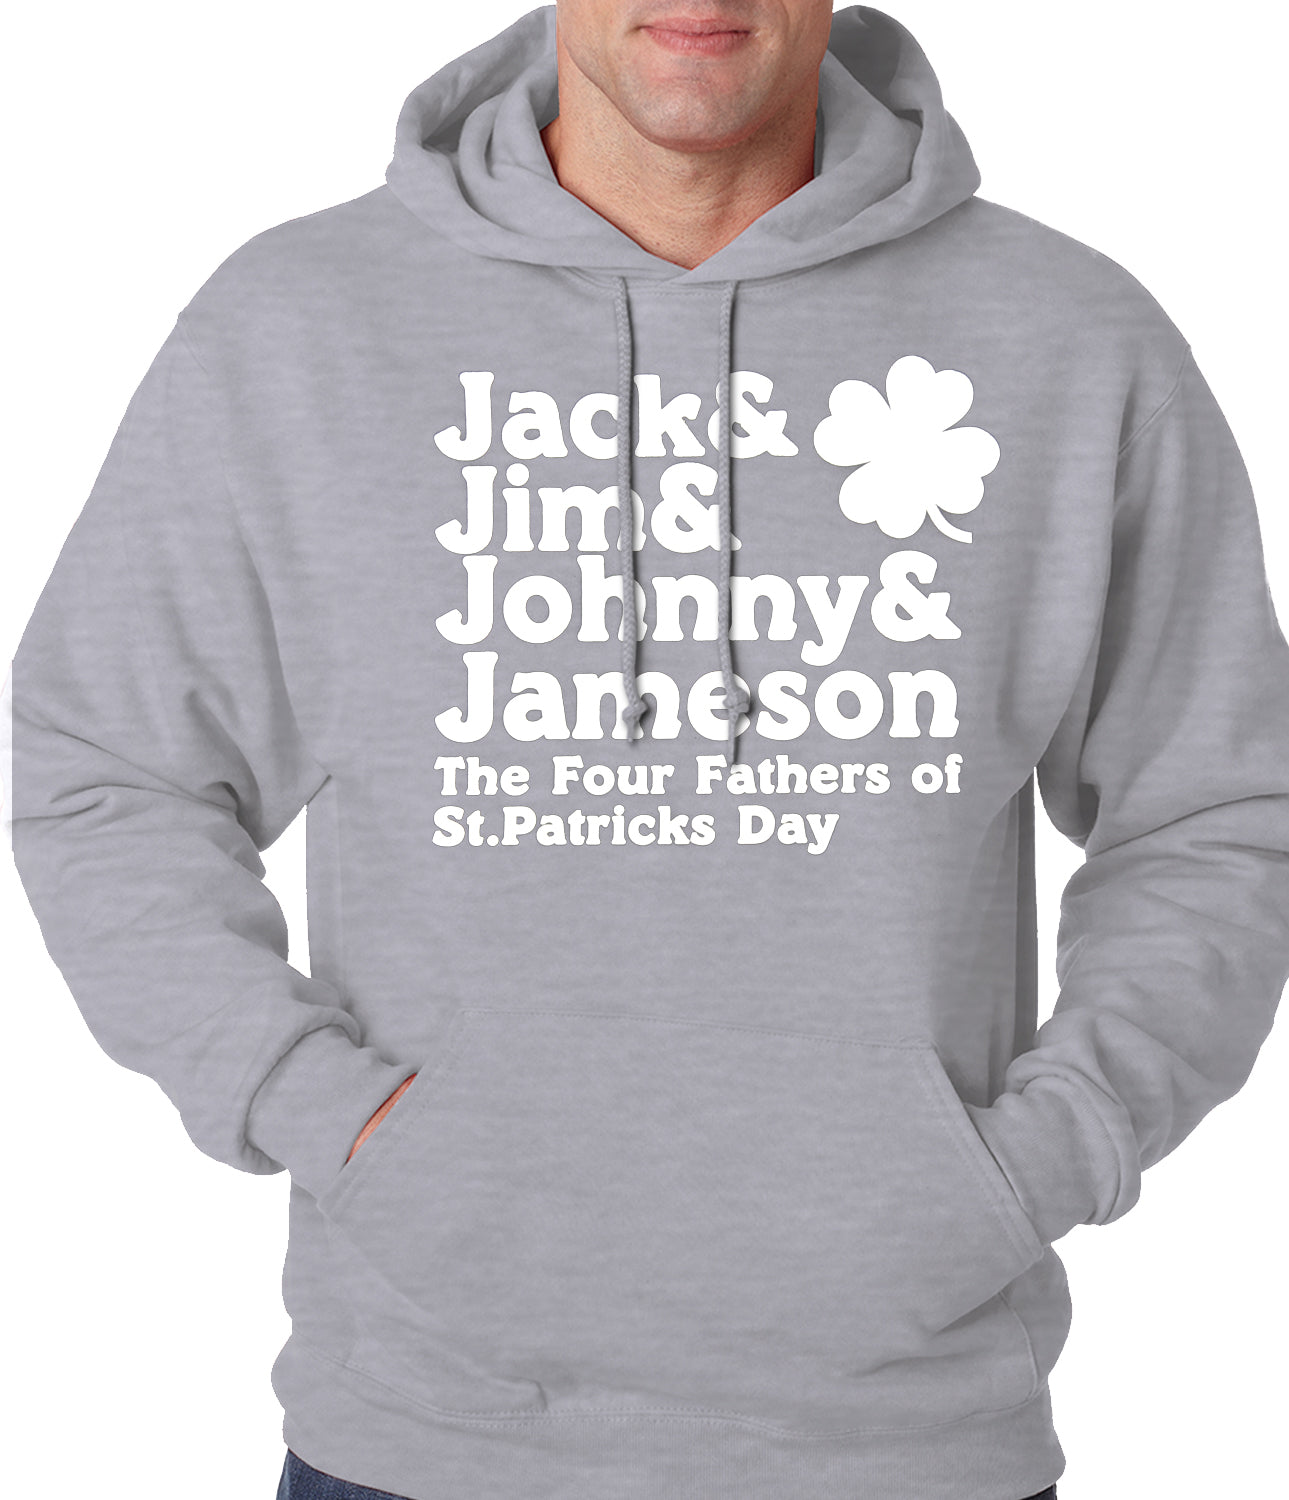 The Four Fathers of St. Patrick's Day Hoodie